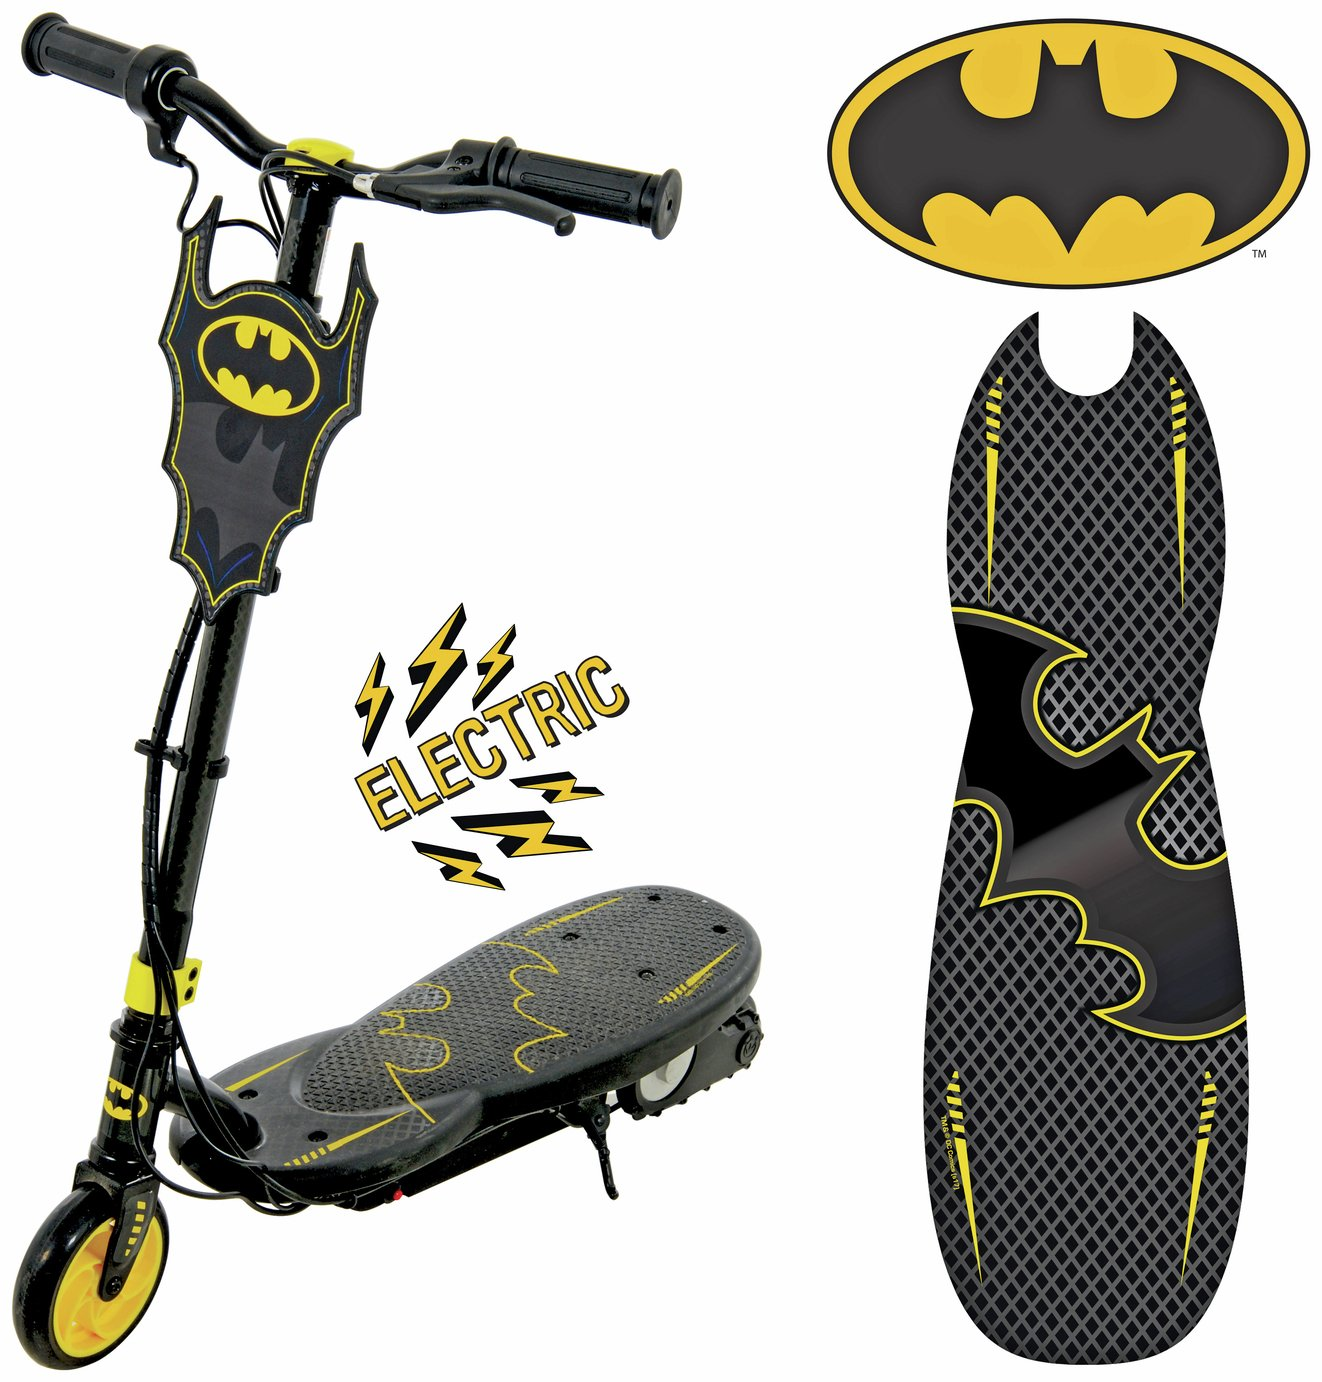 Image of Batman 24V Electric Scooter